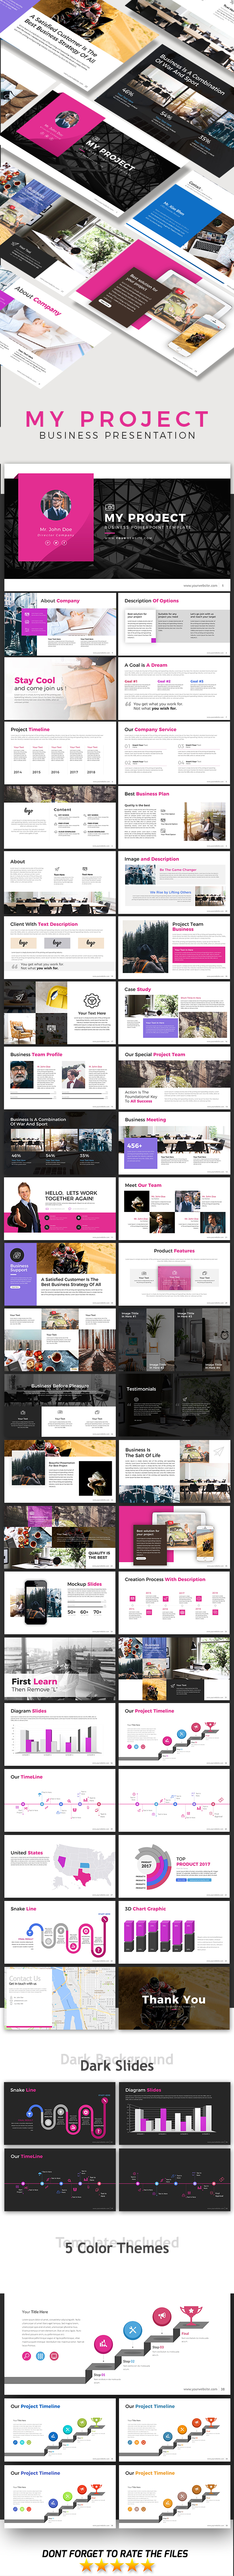 GraphicRiver My Project Business Presentation 20828137